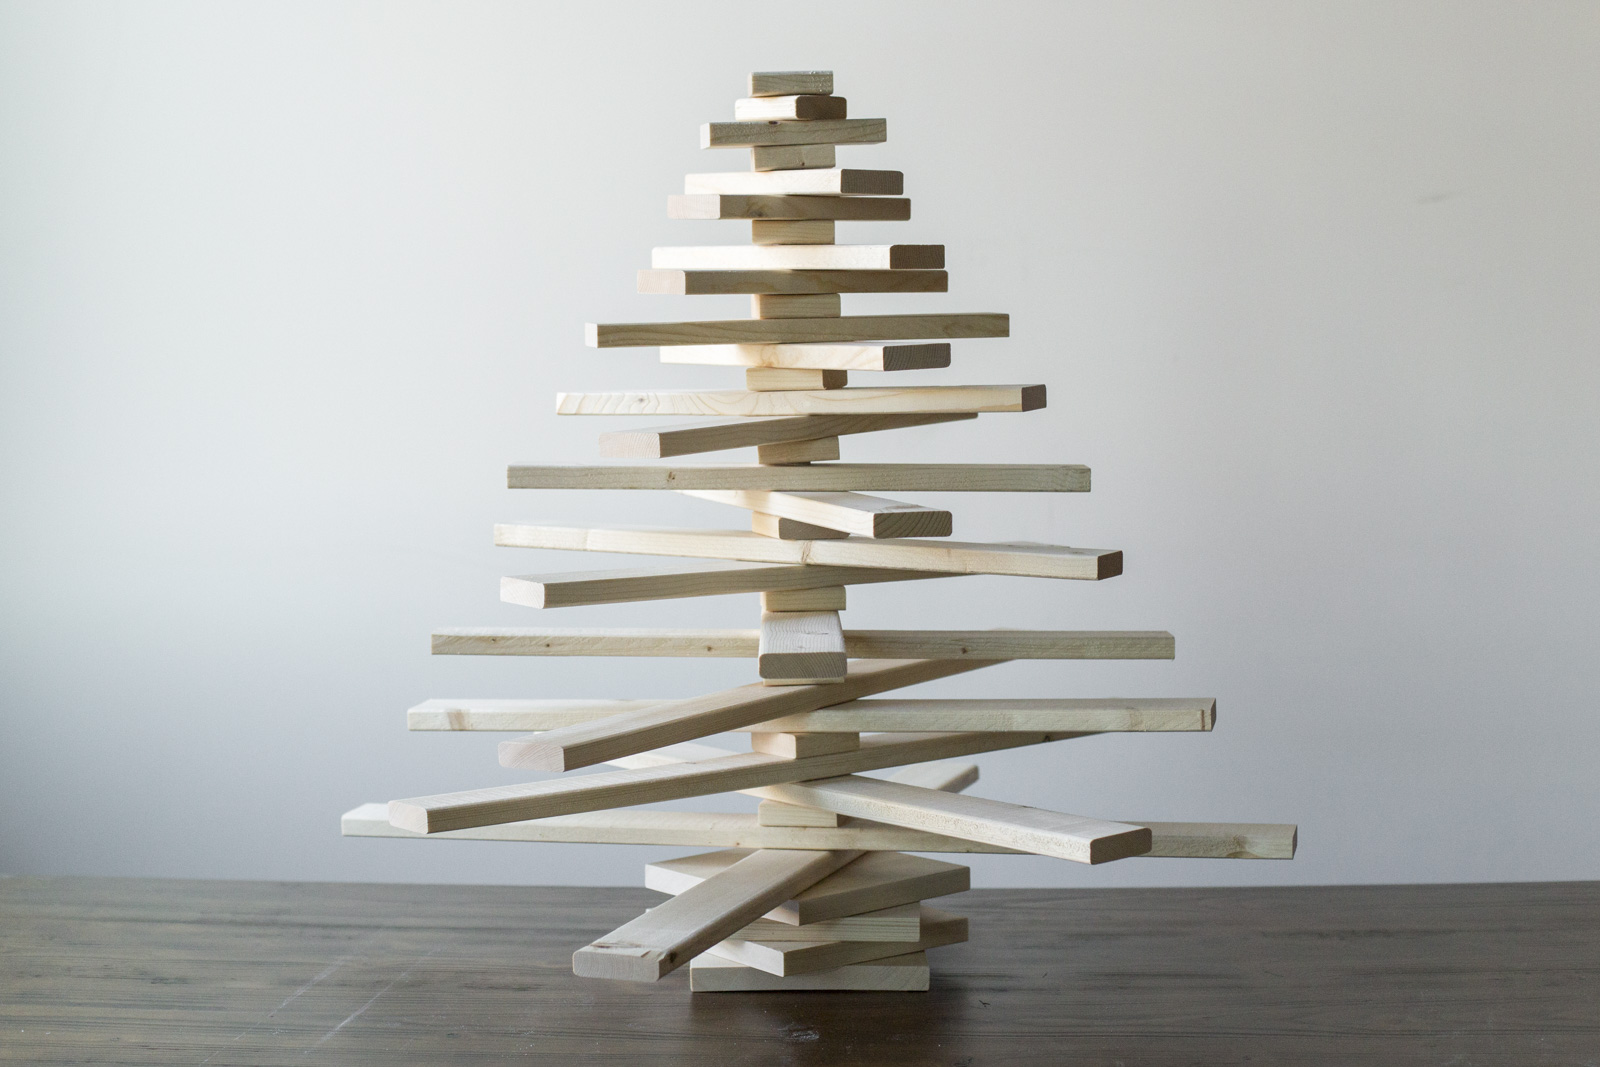 DIY Wooden Christmas Tree: How To Make A Wooden Christmas